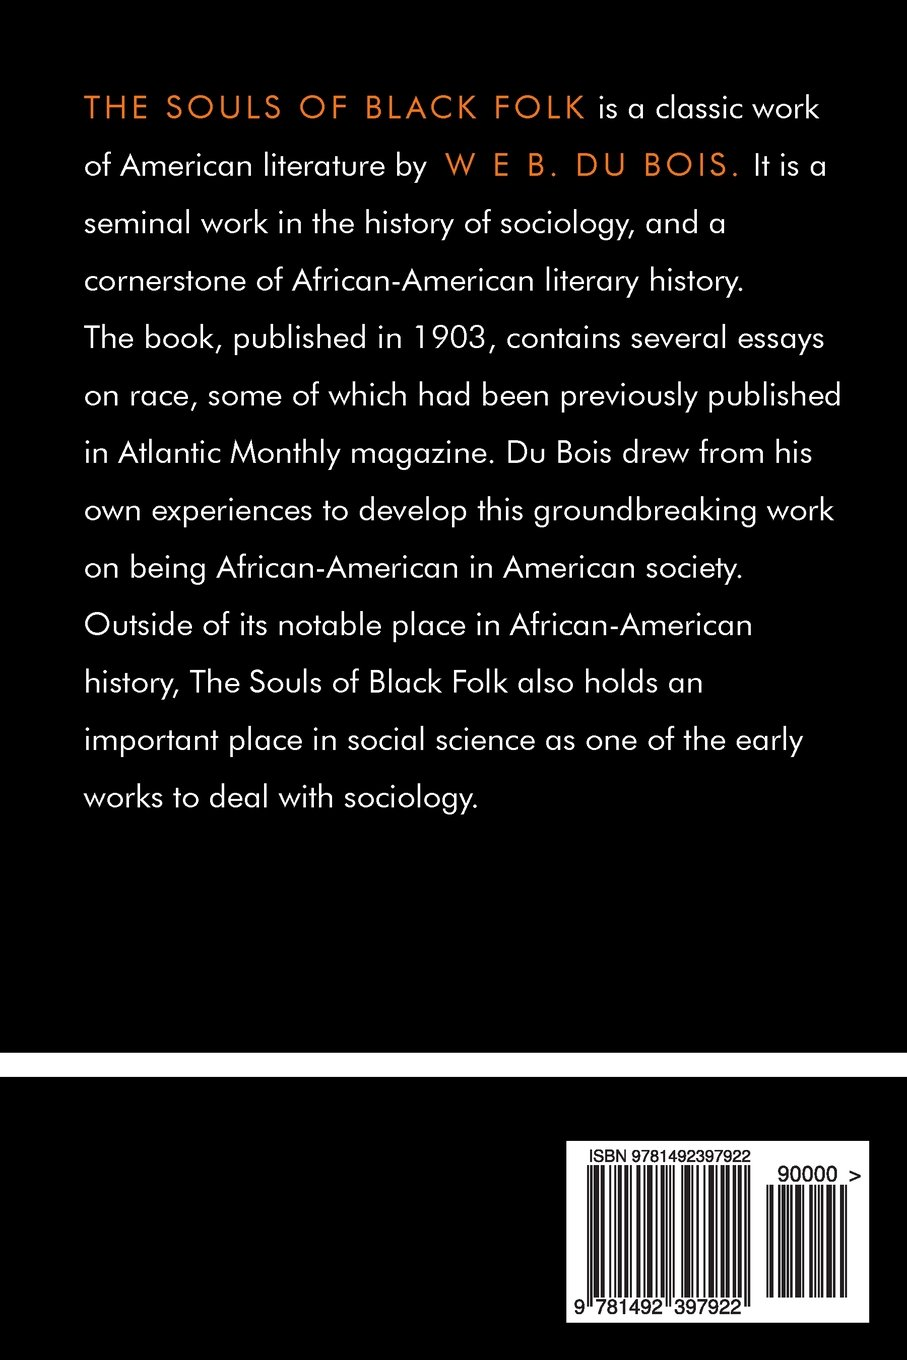 com the souls of black folk 9781492397922 w e b du  com the souls of black folk 9781492397922 w e b du bois books